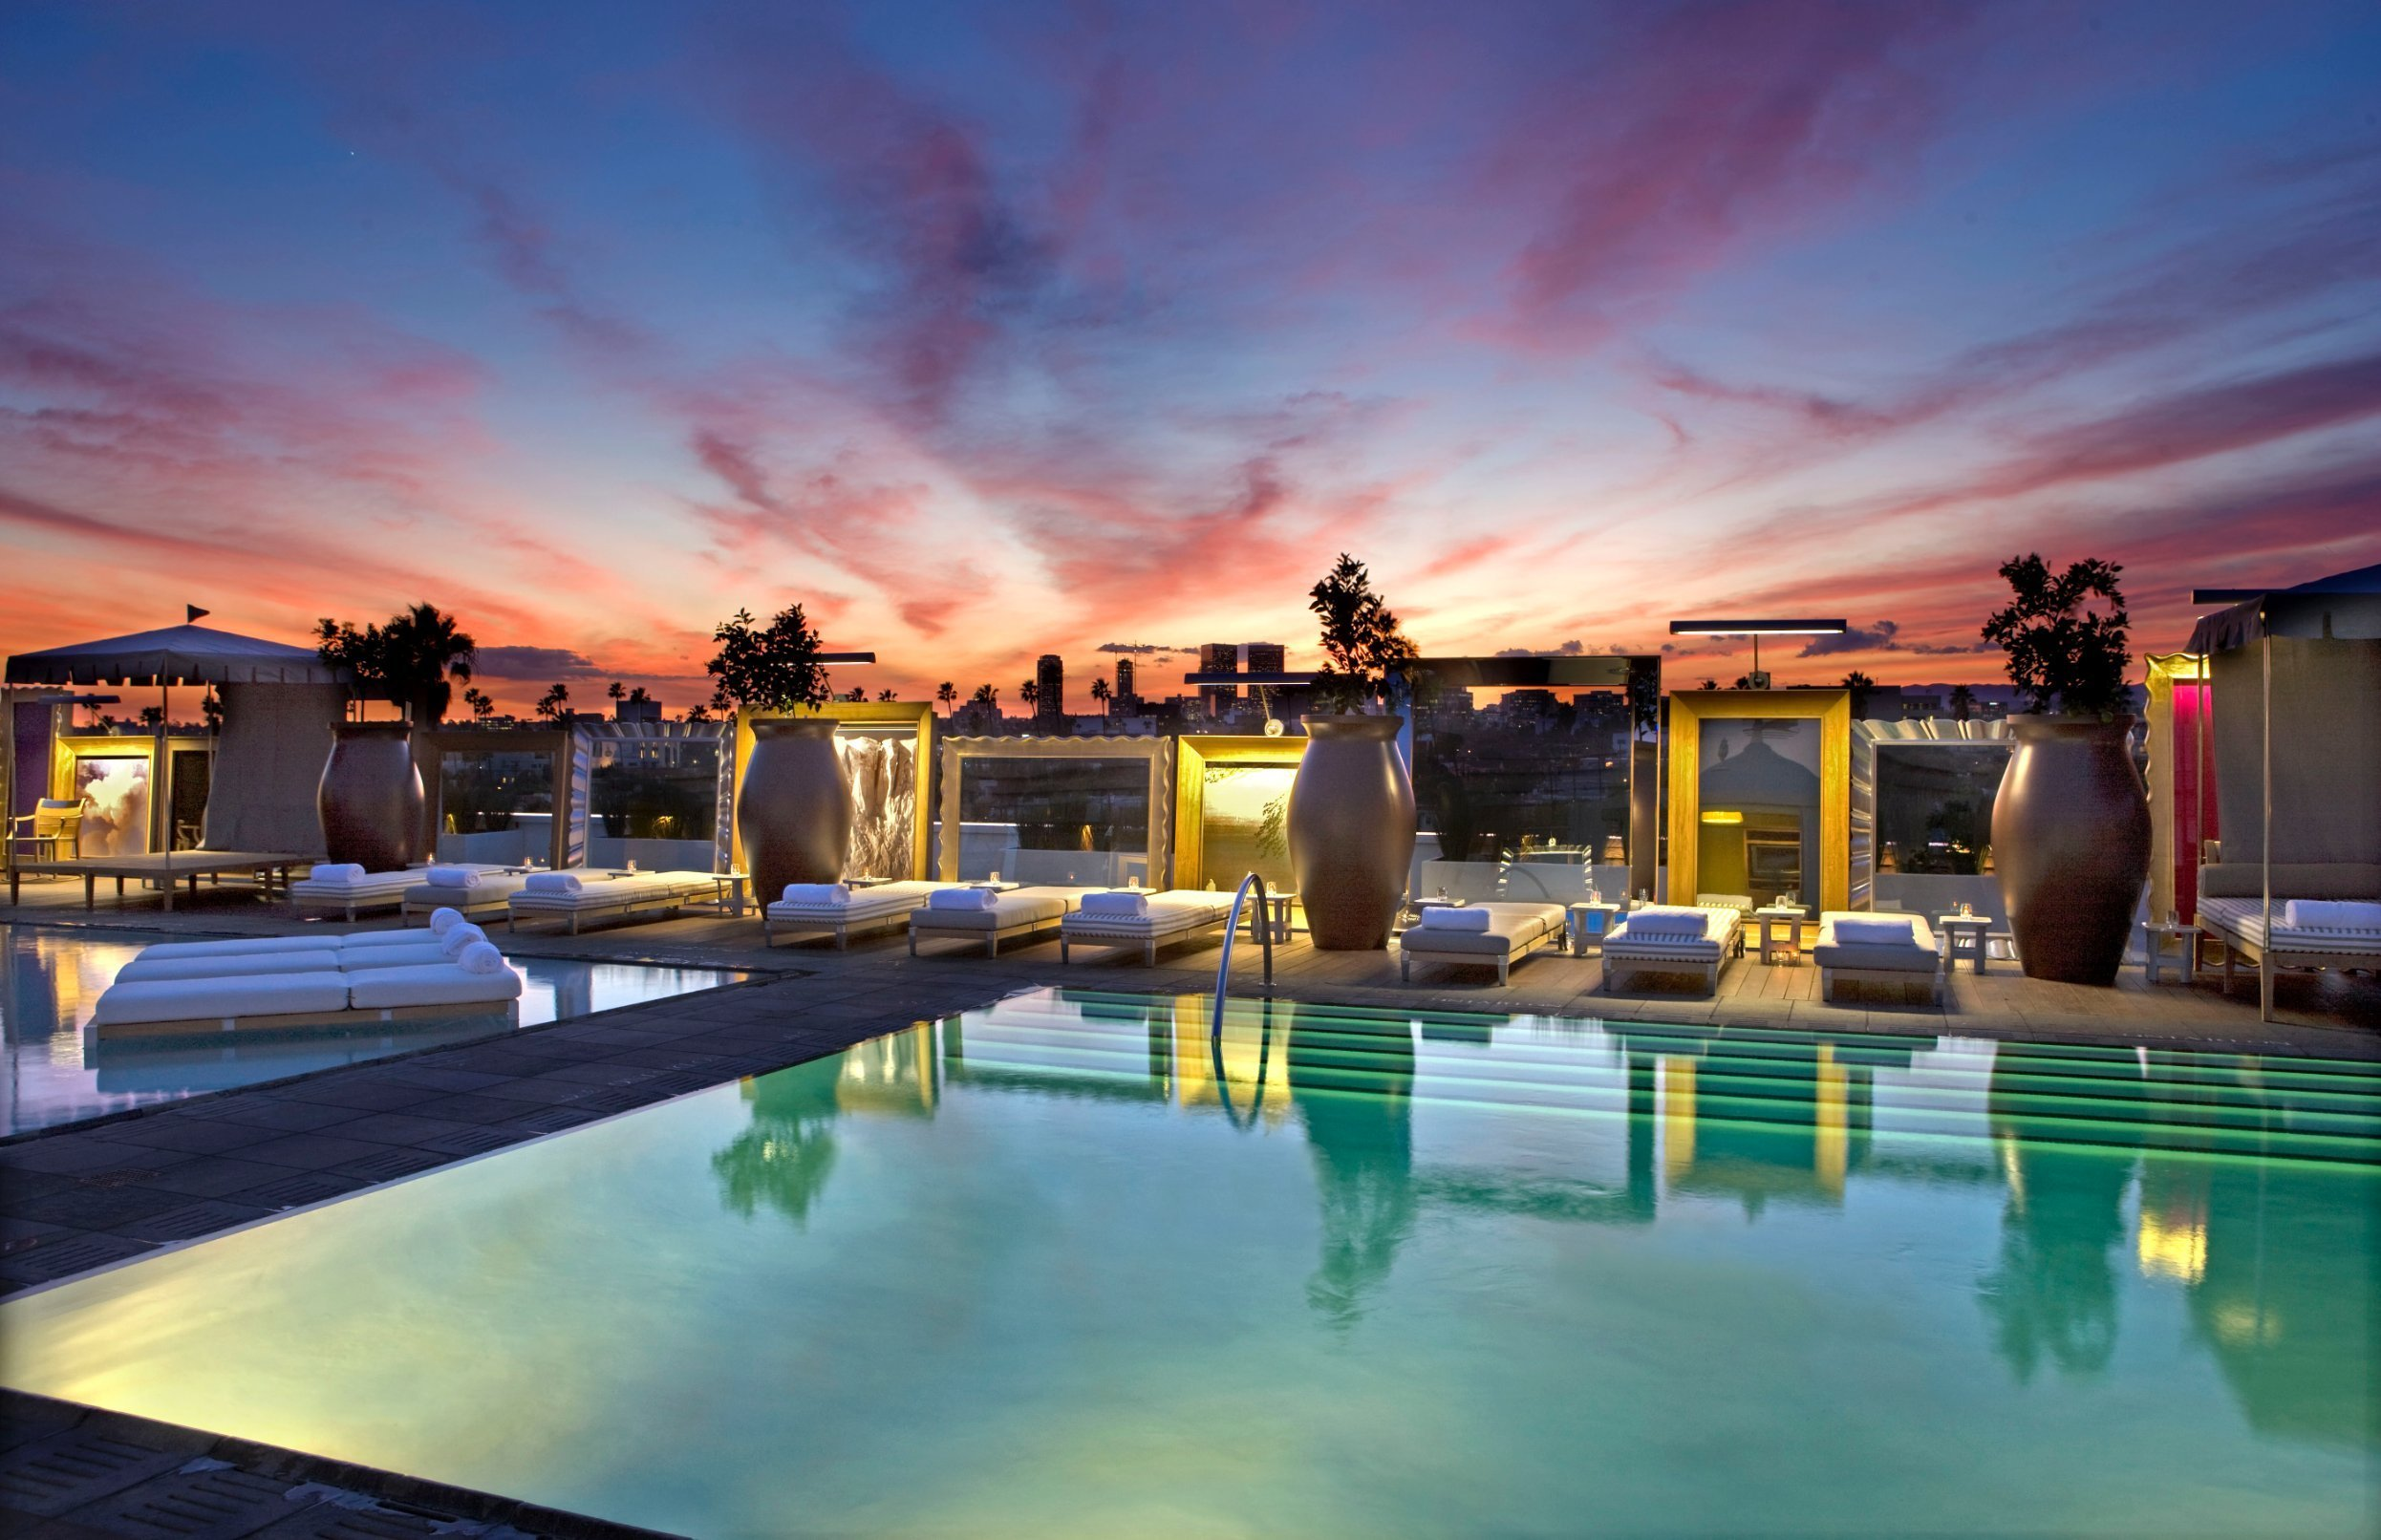 The pool at SLS Beverly Hills features DJs during the spring and summer seasons. Hotel guests can rent cabanas for a true VIP vibe.